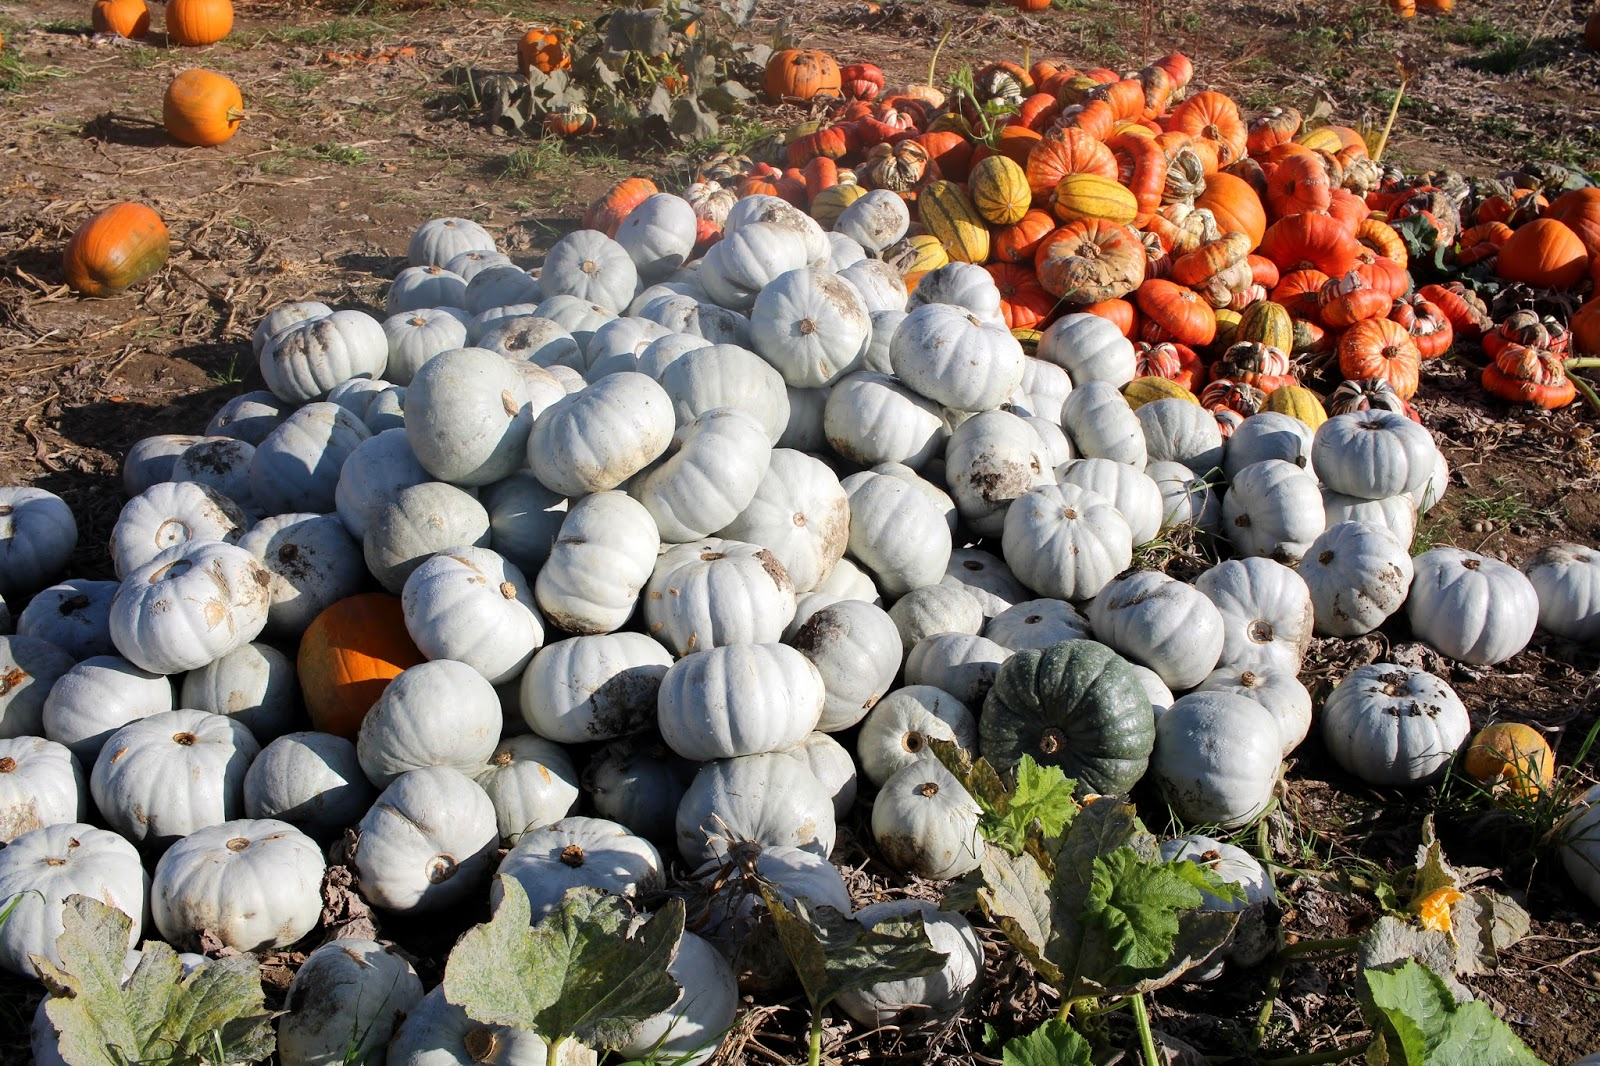 essex foxes farm produce pumpkin patch